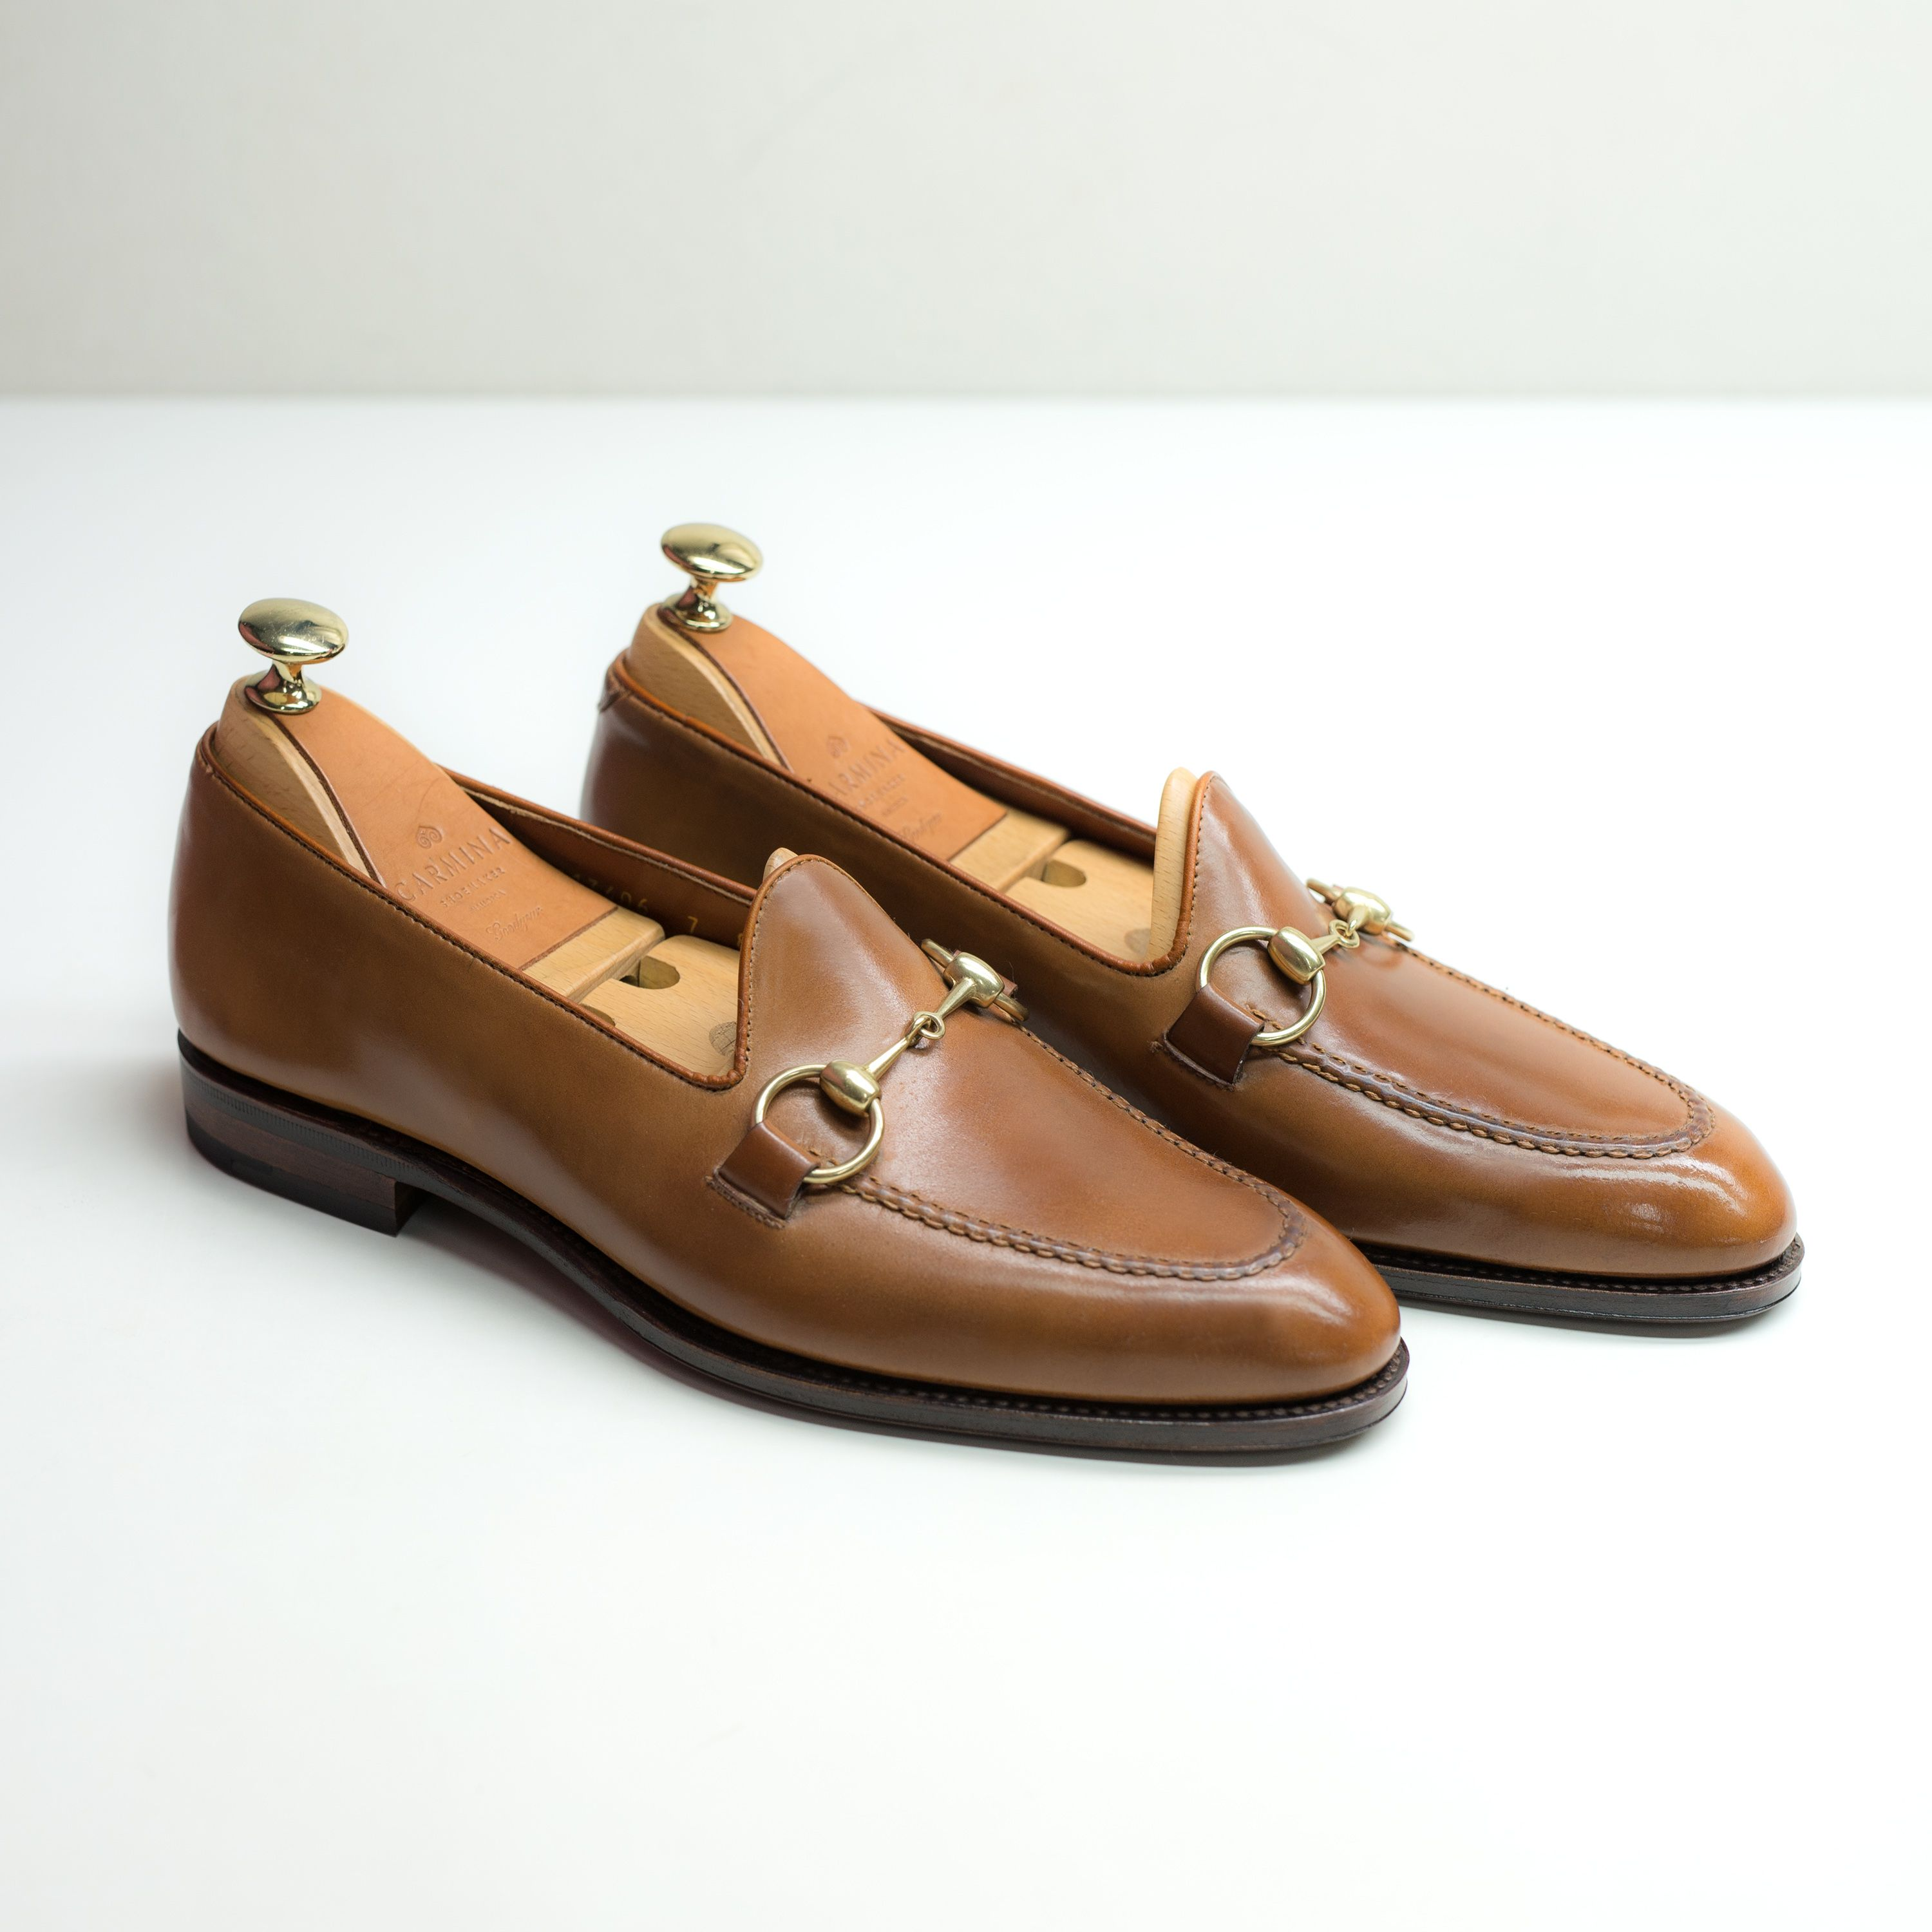 a2682f96e3c UNLINED CORDOVAN HORSEBIT LOAFERS 80643 UETAM IN BOURBON